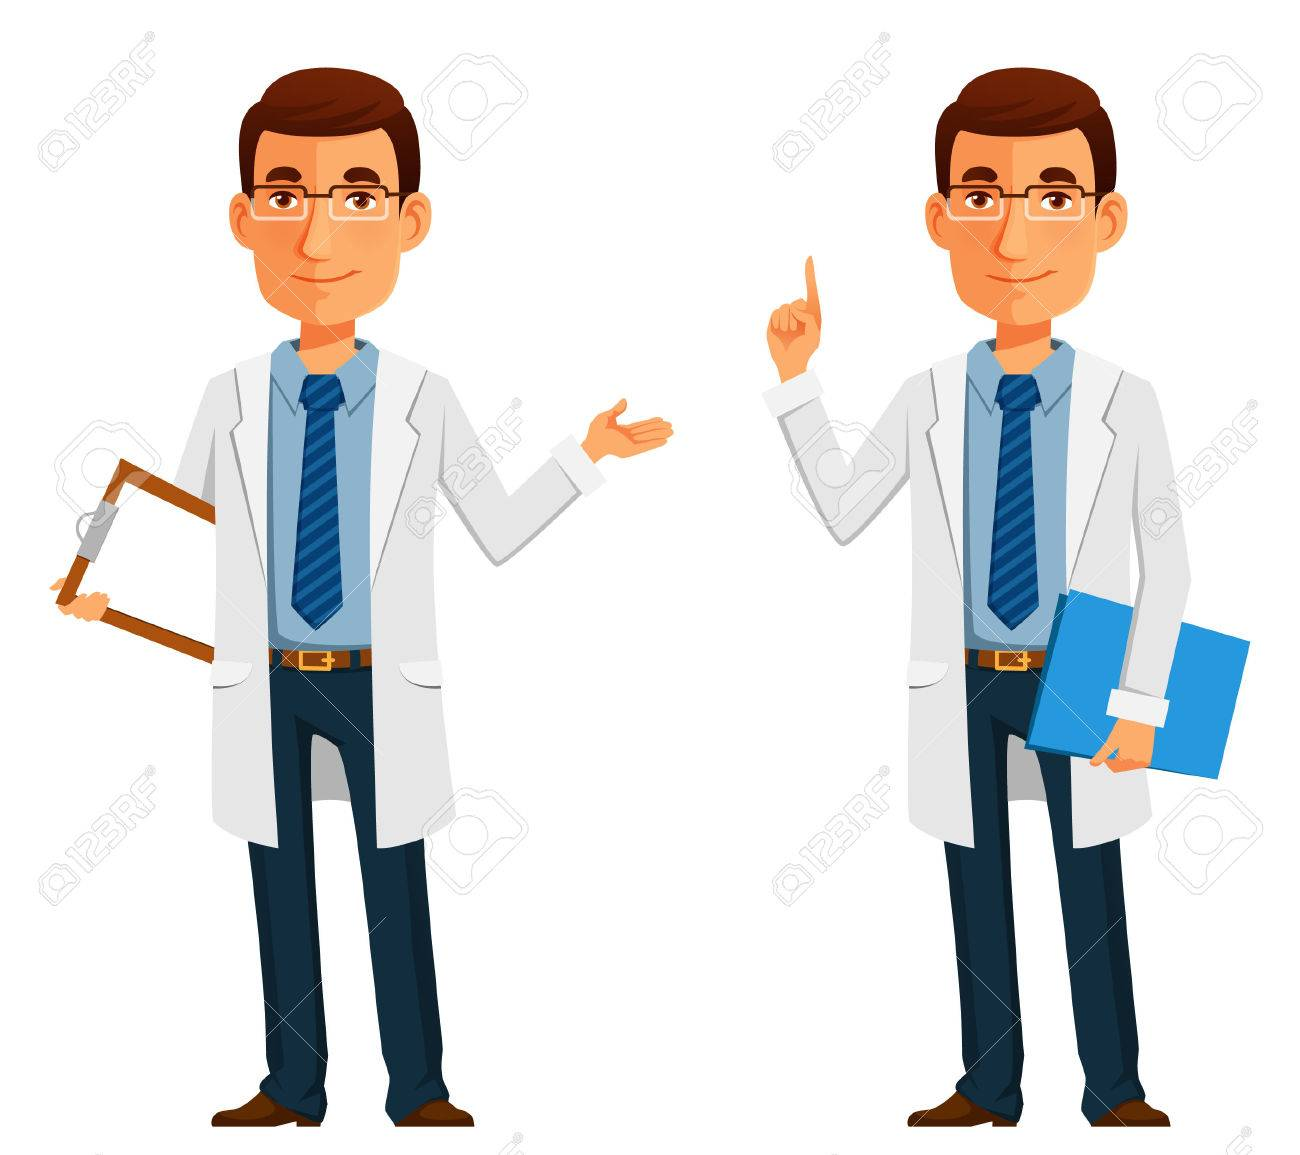 cartoon illustration of a friendly young doctor - 60225904